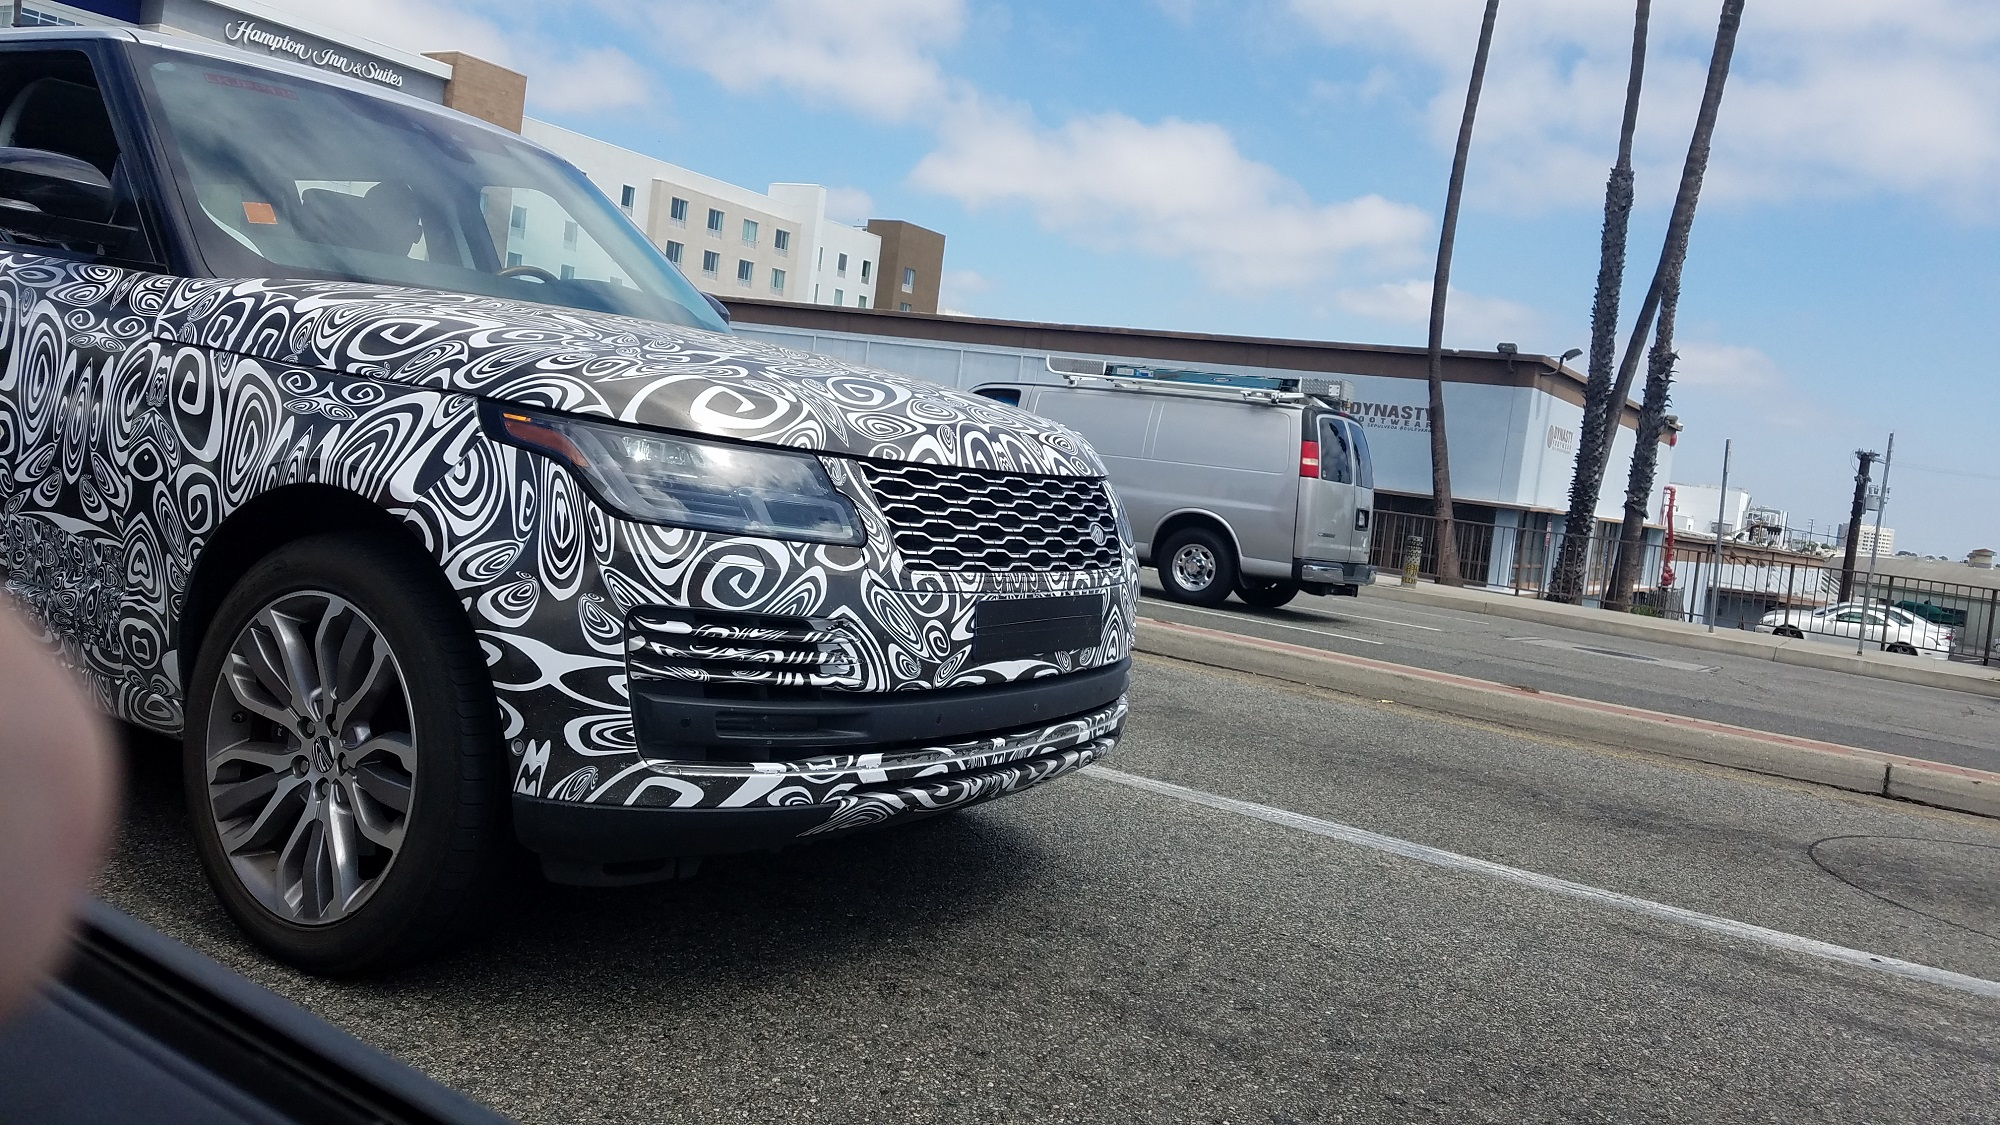 2019 2020 Range Rover Spied Spy Shots Testing Camouflage Jaguarforums.com Jake Stumph